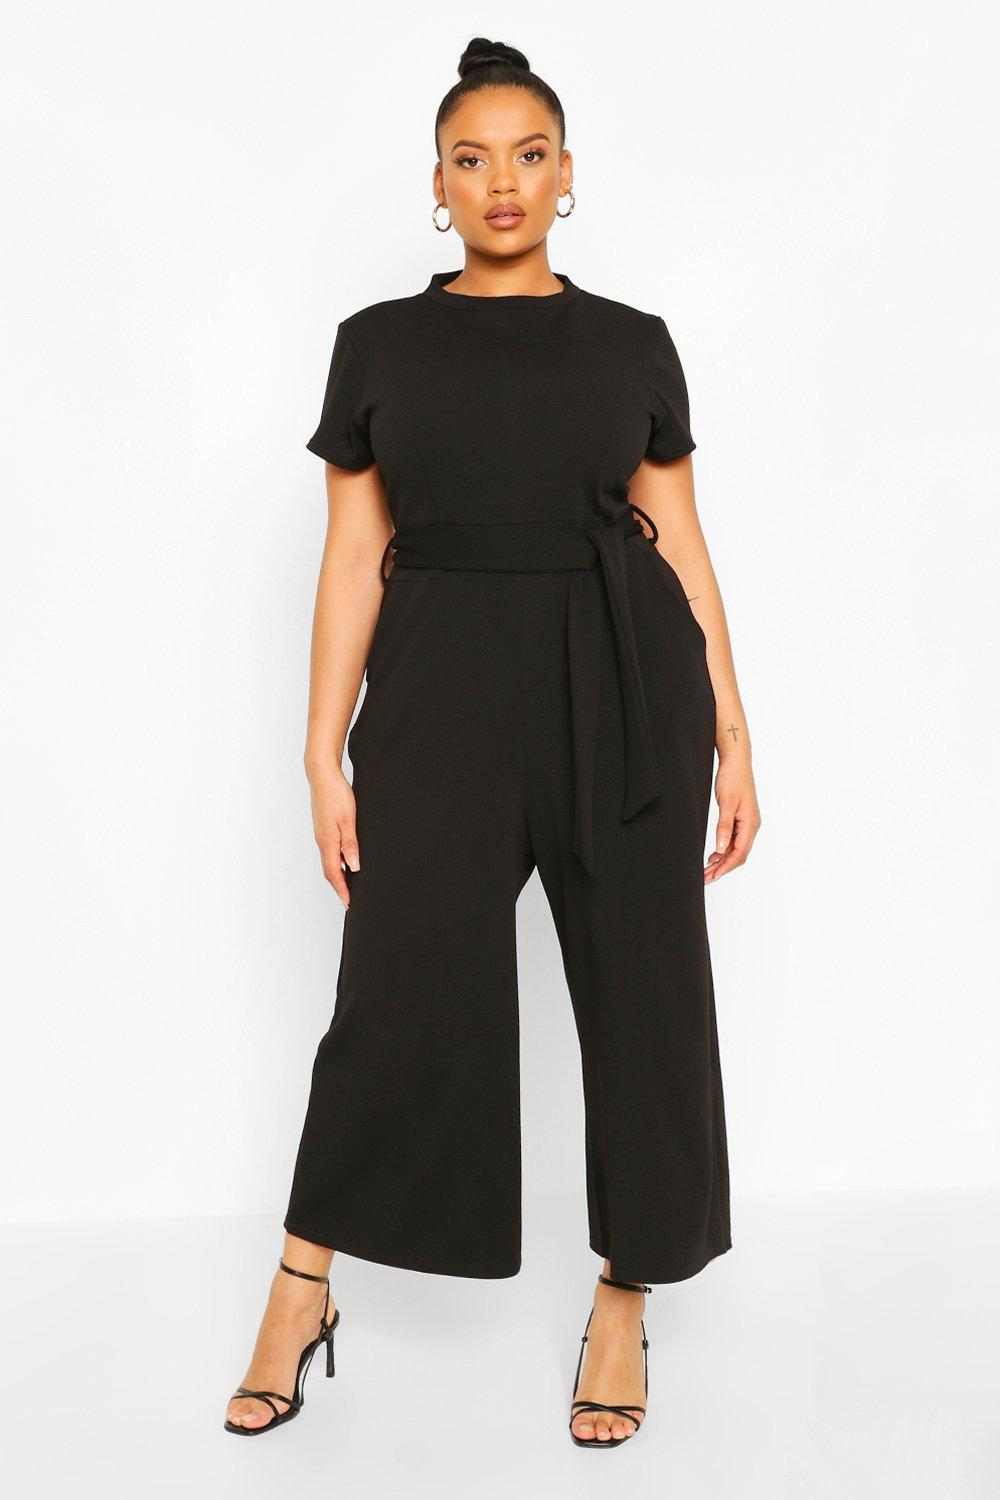 boohoo Womens Plus Tie Belt Culotte Jumpsuit - Black - 20, Black